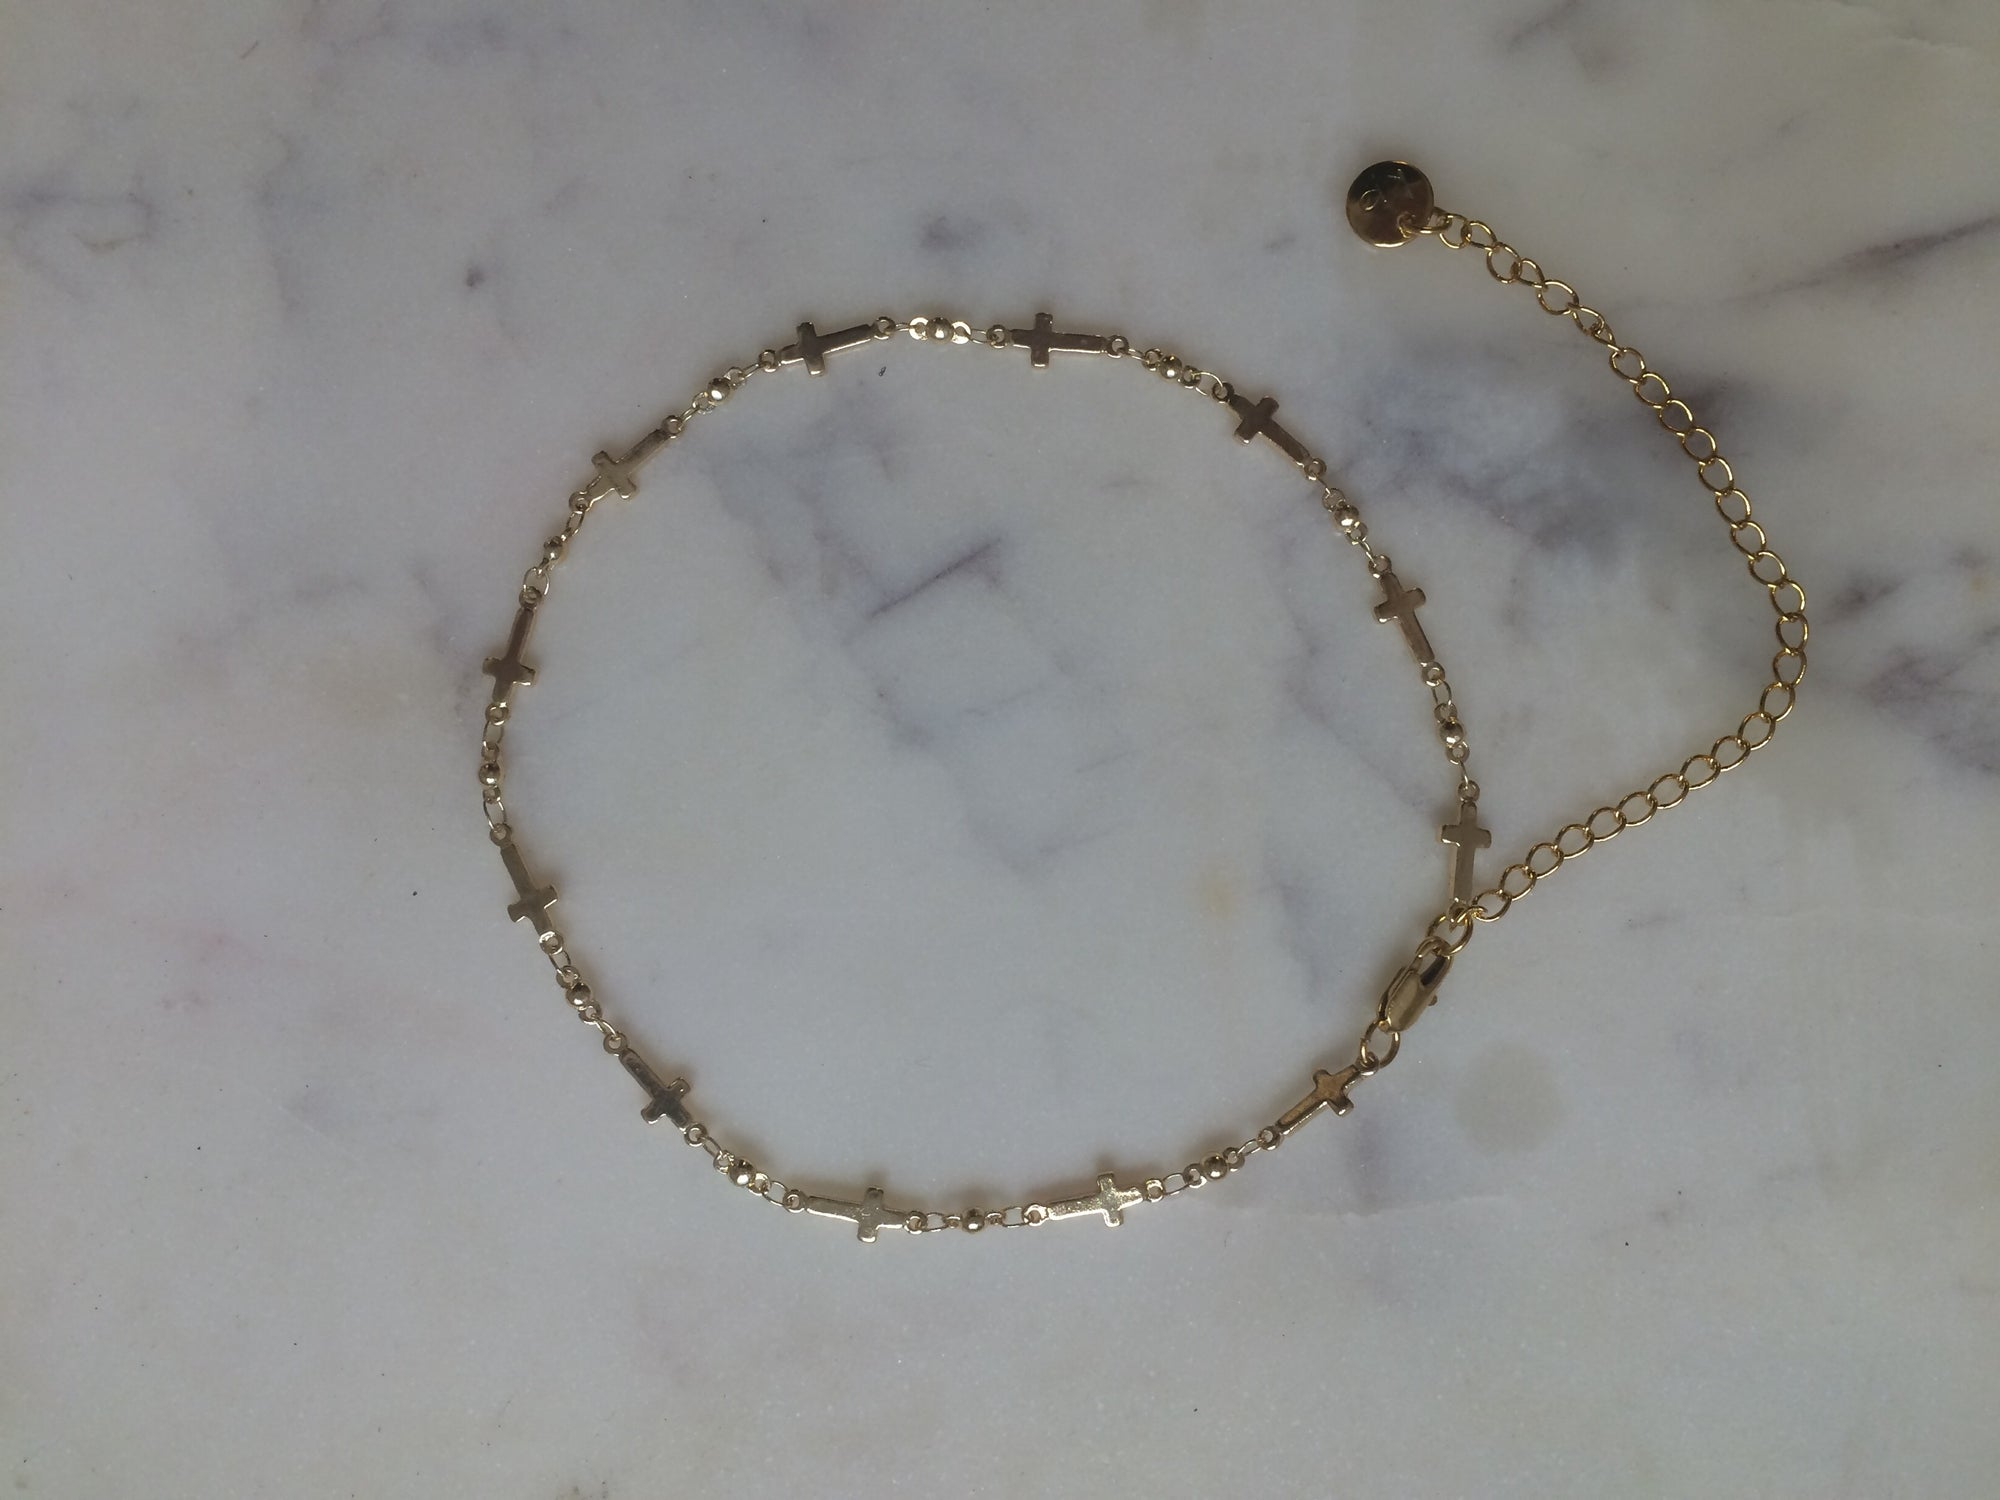 cross choker, cross necklace,thin choker, thin chain, thin necklace, thick necklace, thick choker, gold choker, gold chain, cross choker necklace